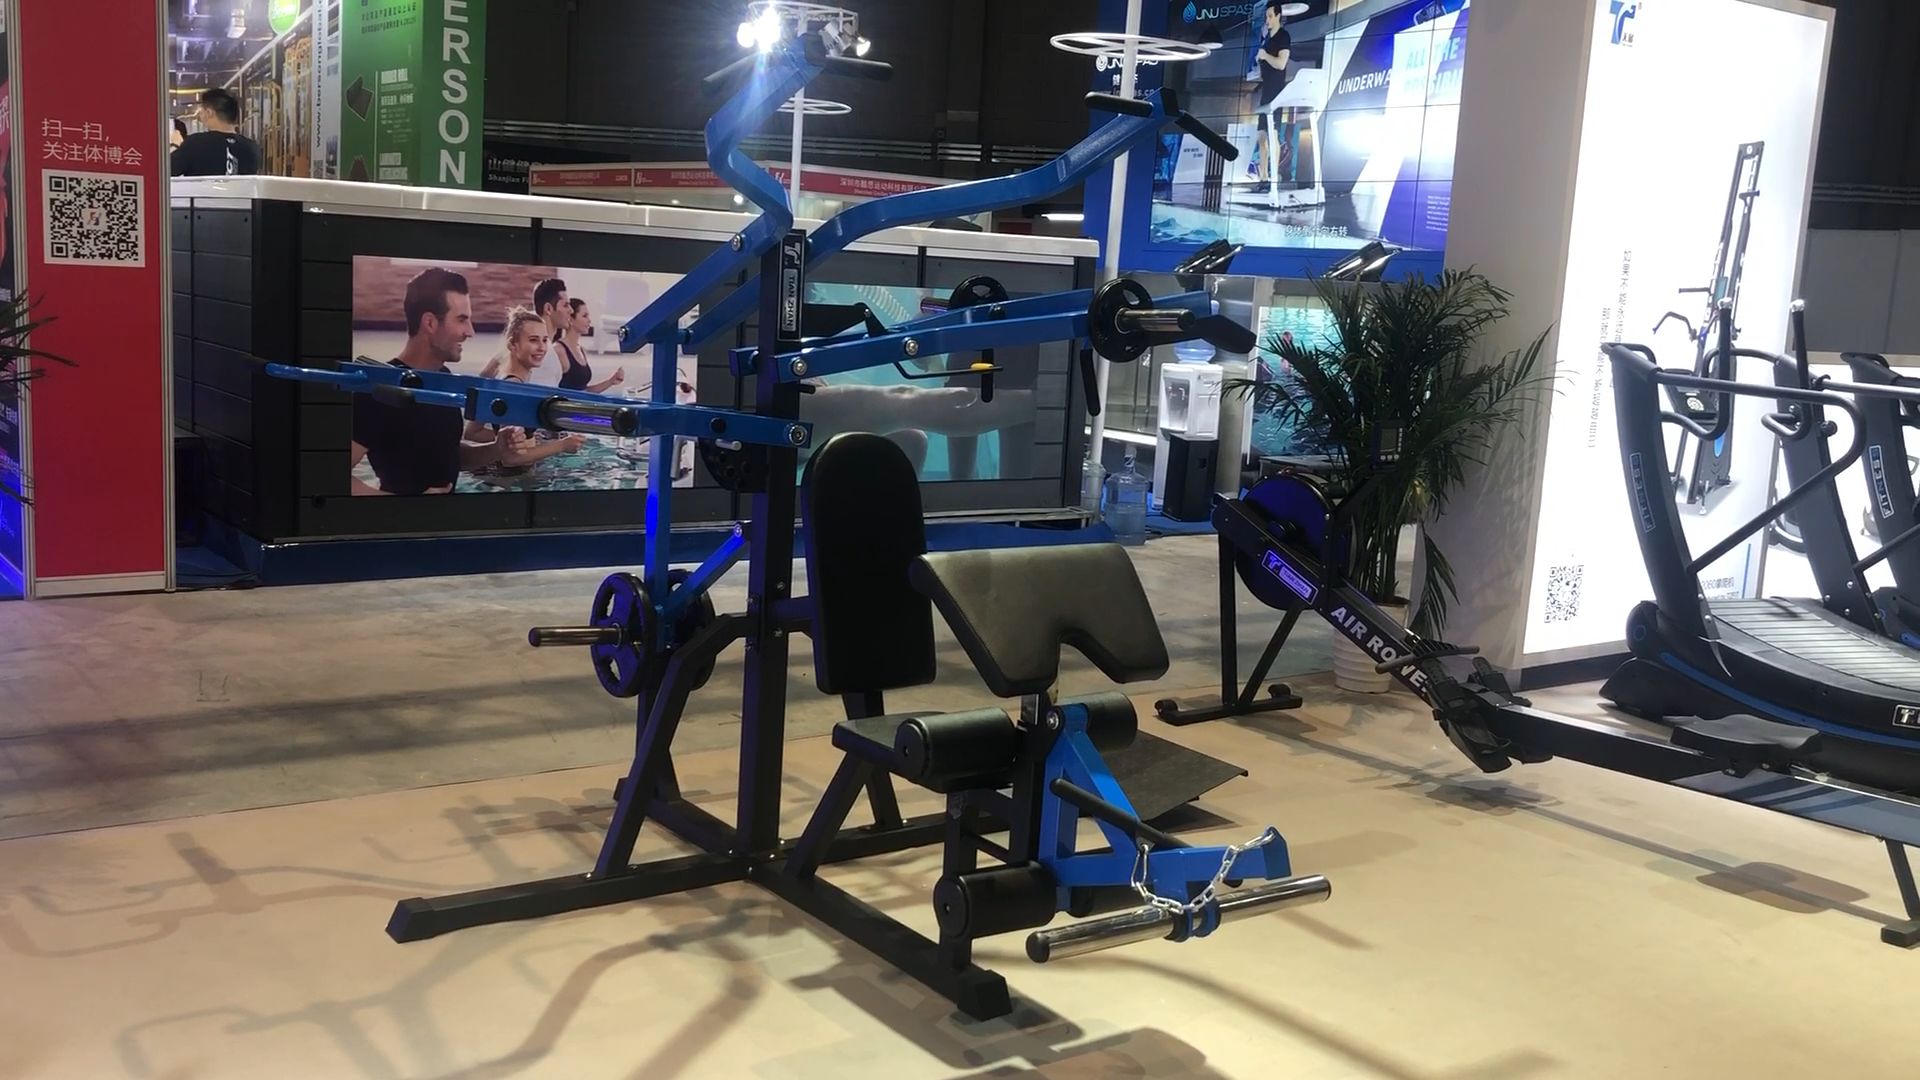 Multi functional bench home exercise fitness equipment 3 station multi gym popular machine